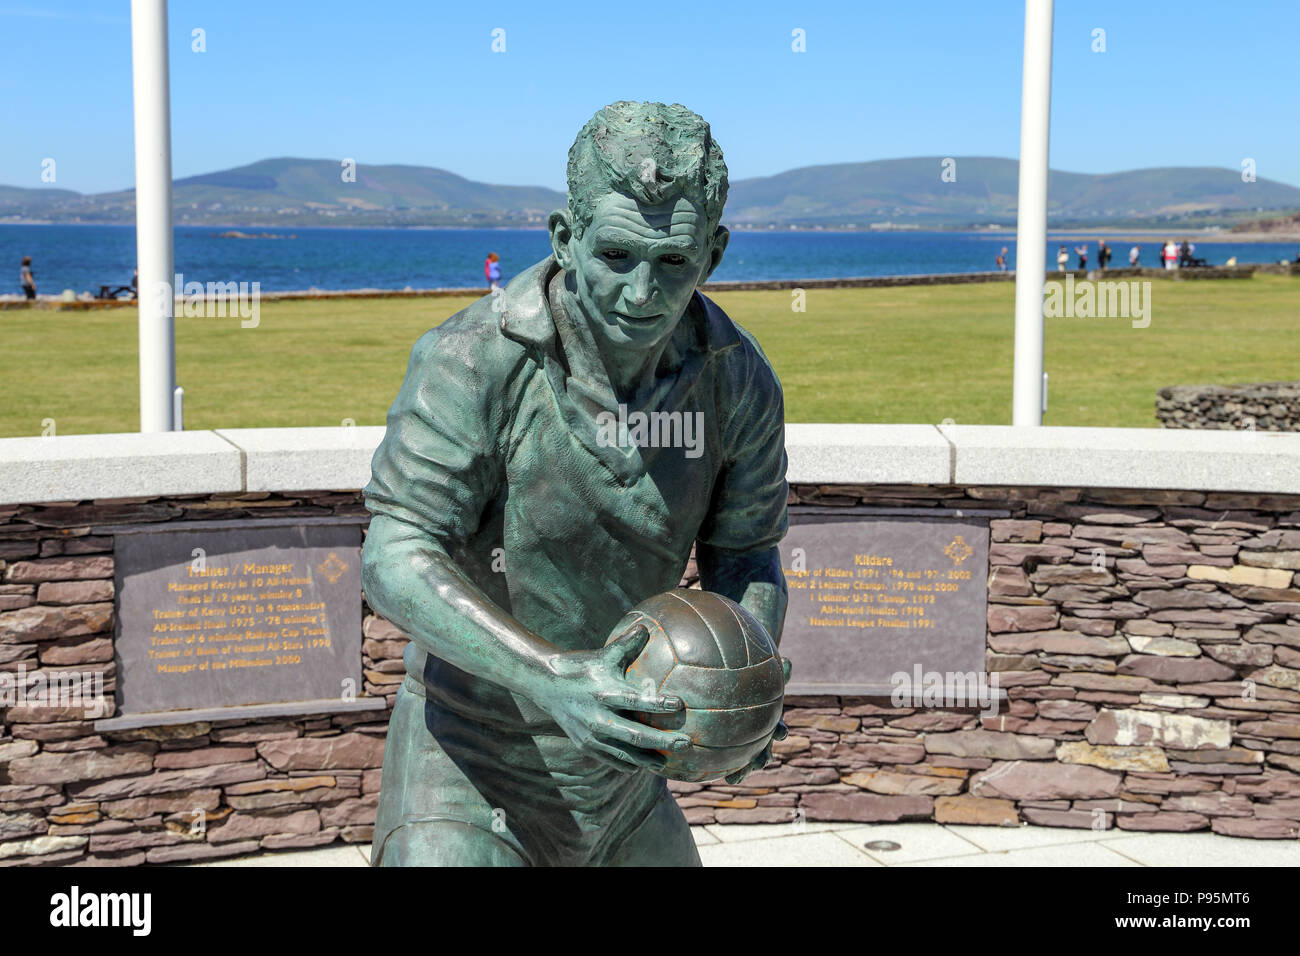 The bronze statue of famed Gaelic footballer and coach Mike O'Dwyer on the waterfront of waterville, Ireland, County Kerry. - Stock Image